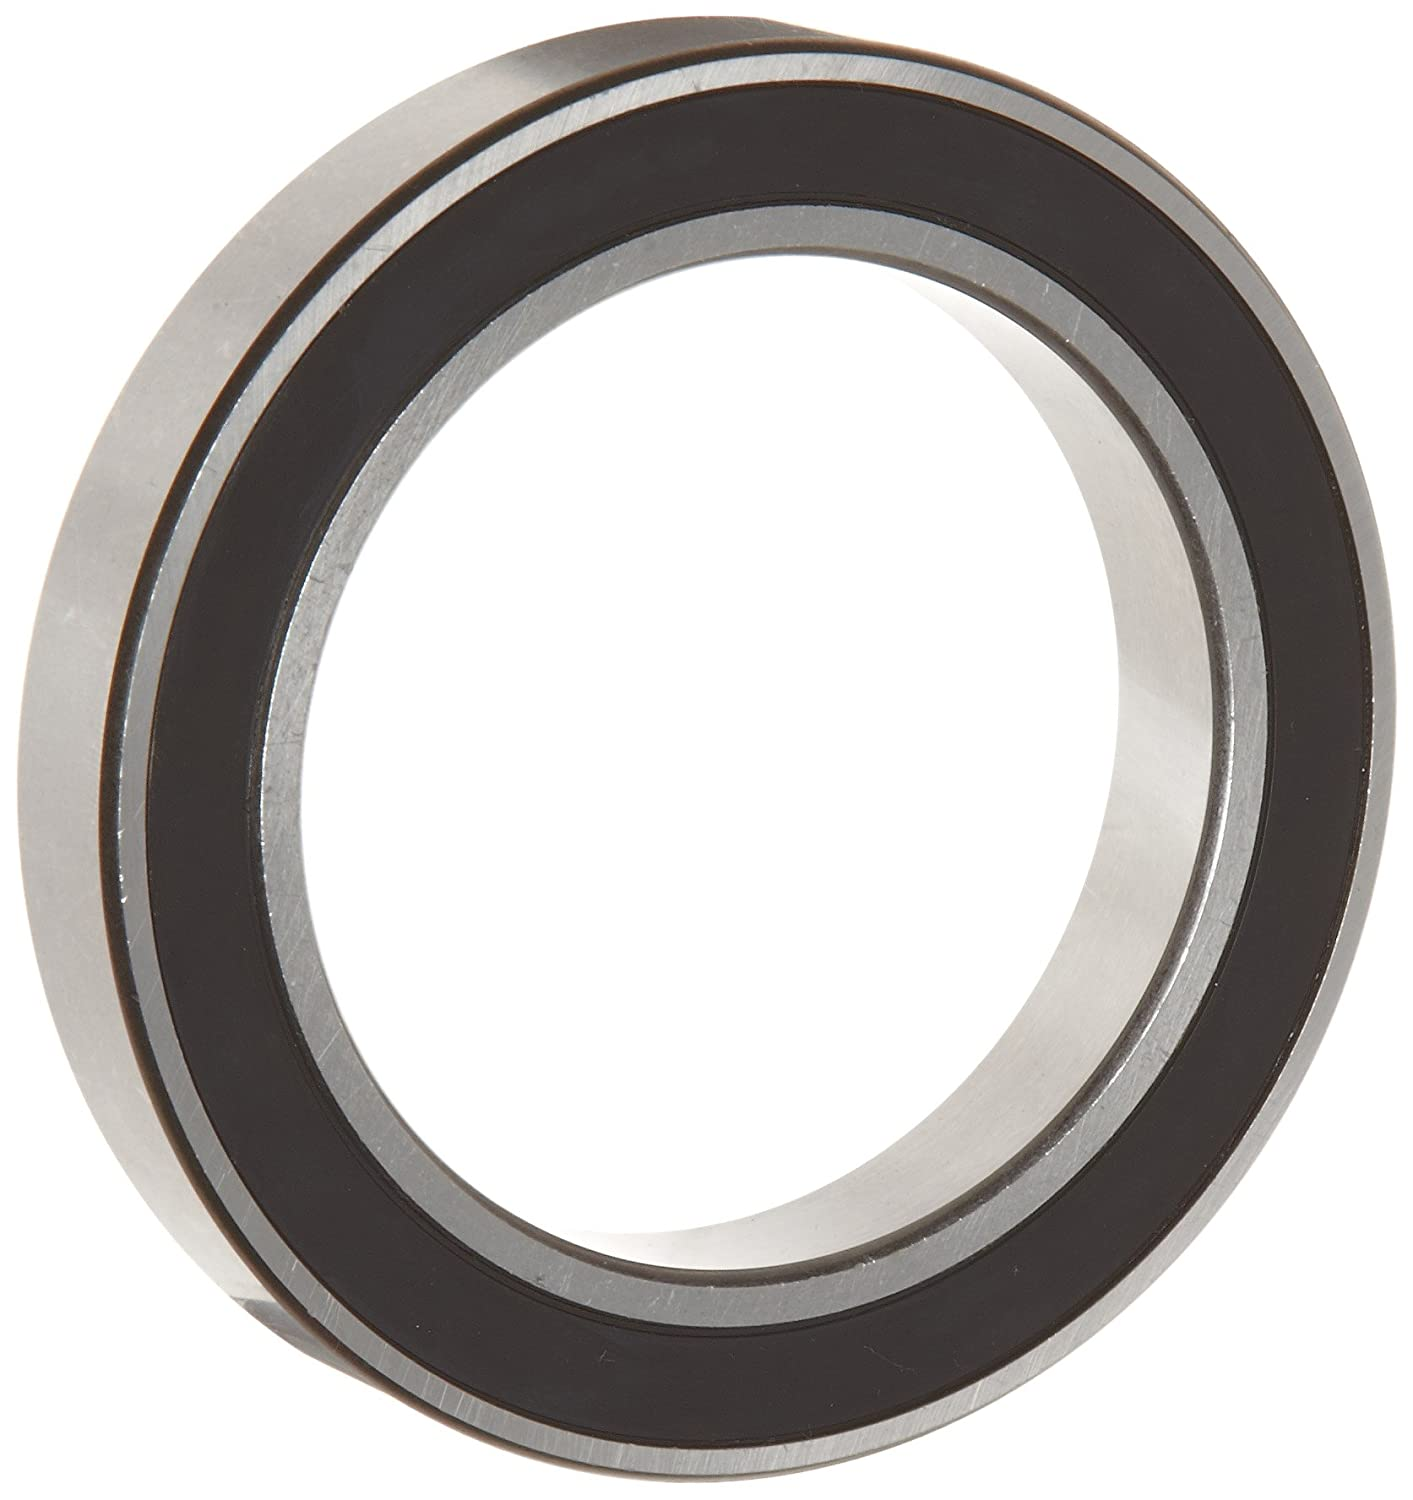 WJB 6904-2RS Deep Groove Ball Bearing, Double Sealed, Metric, 20mm ID, 37mm OD, 9mm Width, 1430lbf Dynamic Load Capacity, 825lbf Static Load Capacity